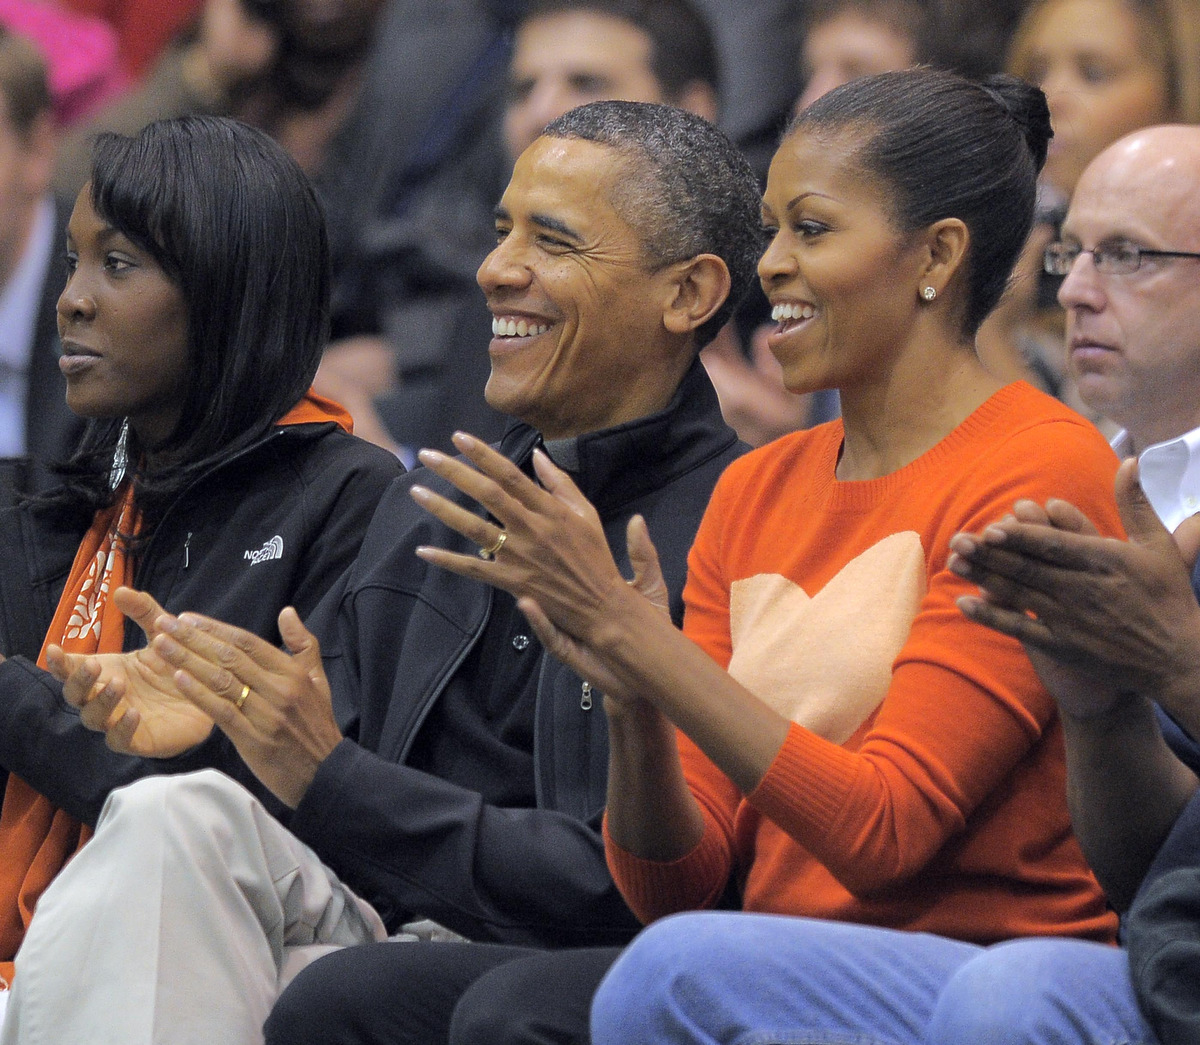 The Obamas in Maryland